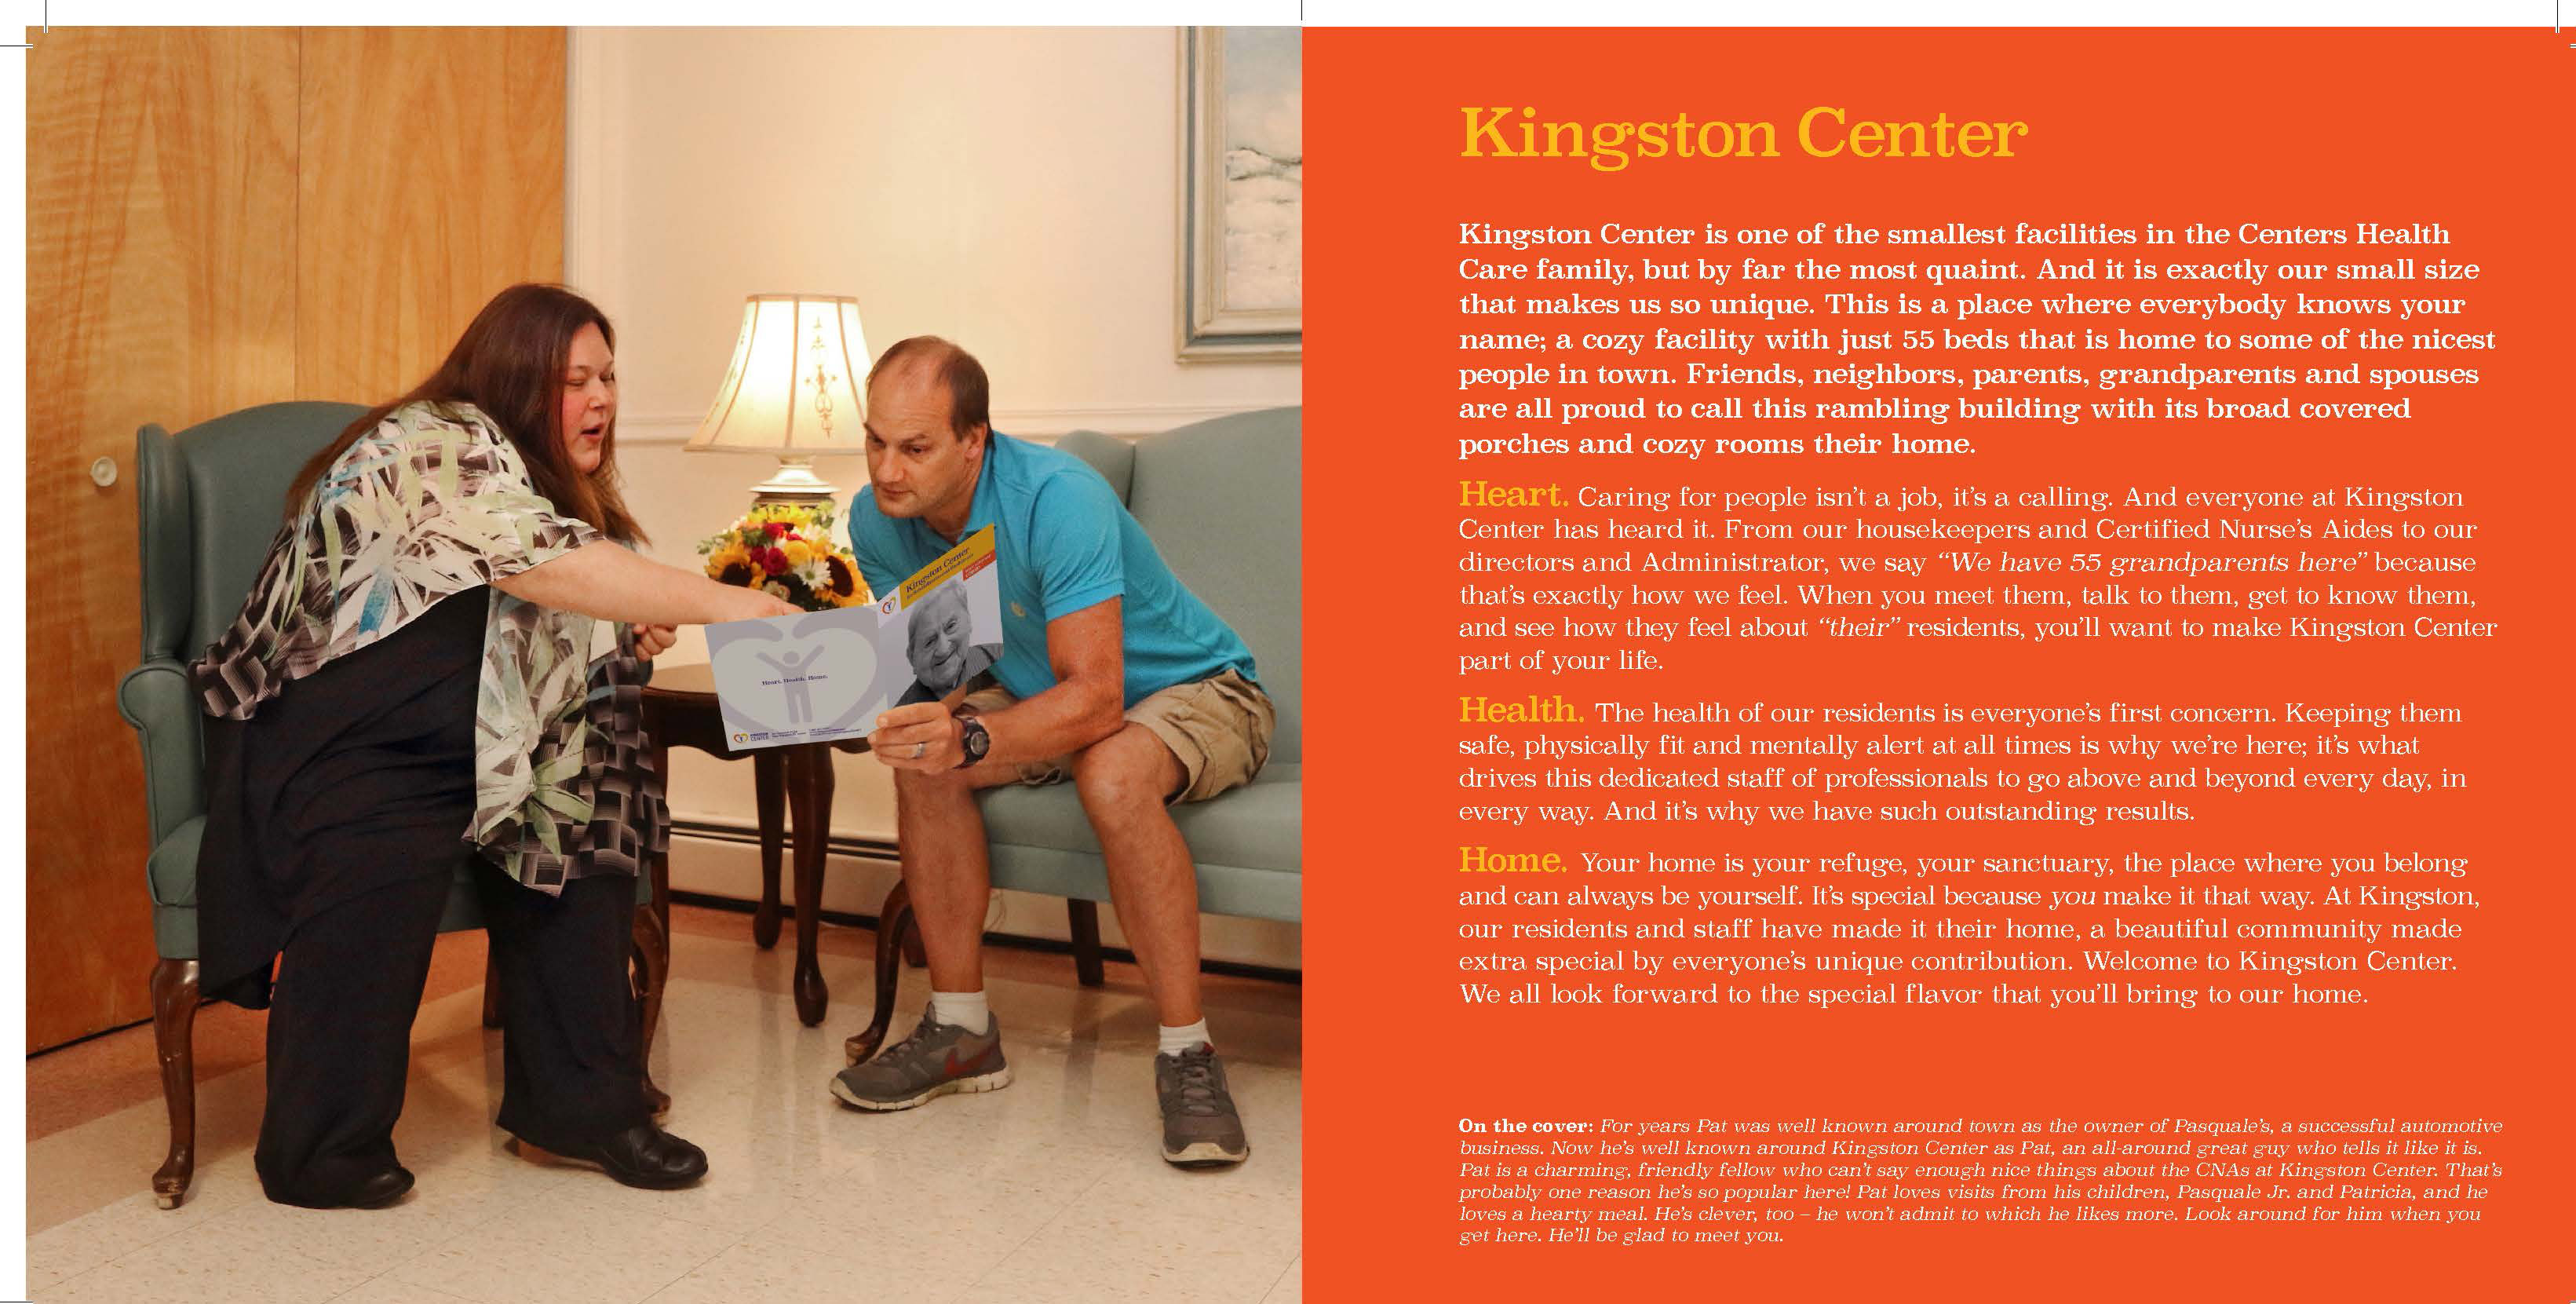 Kingston Center Centers Health Care